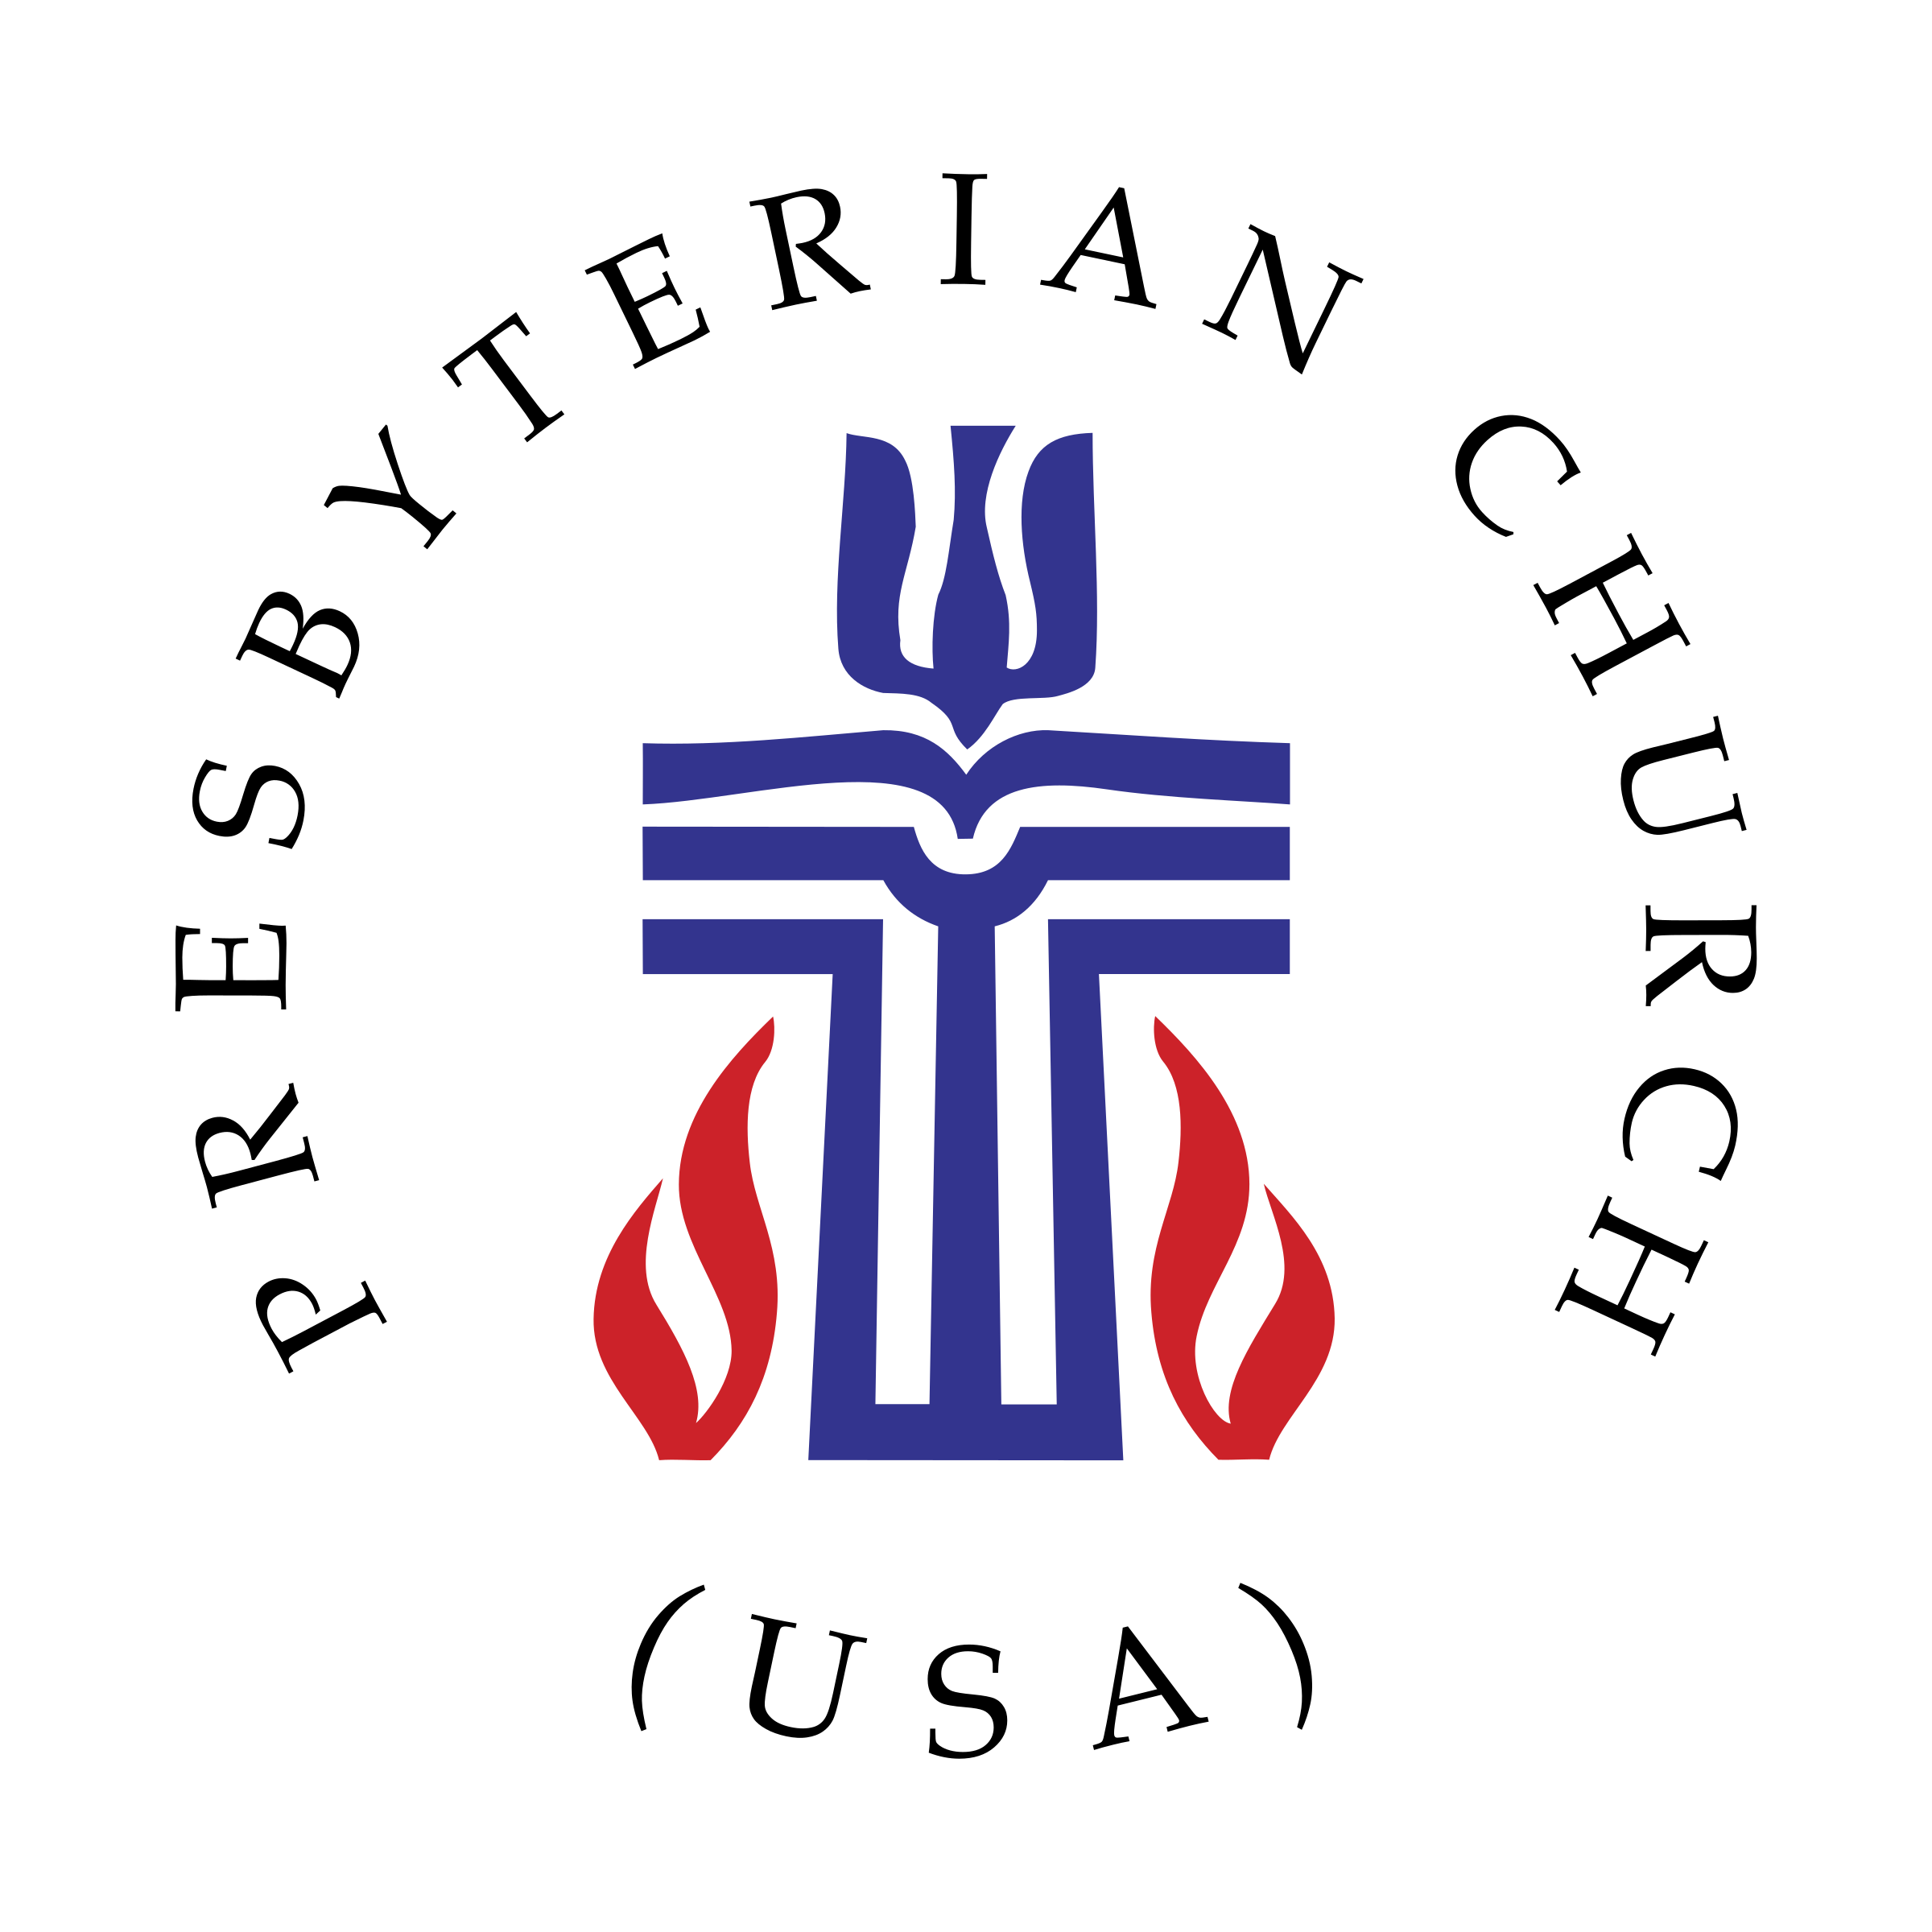 Church logos png. Presbyterian logo transparent svg